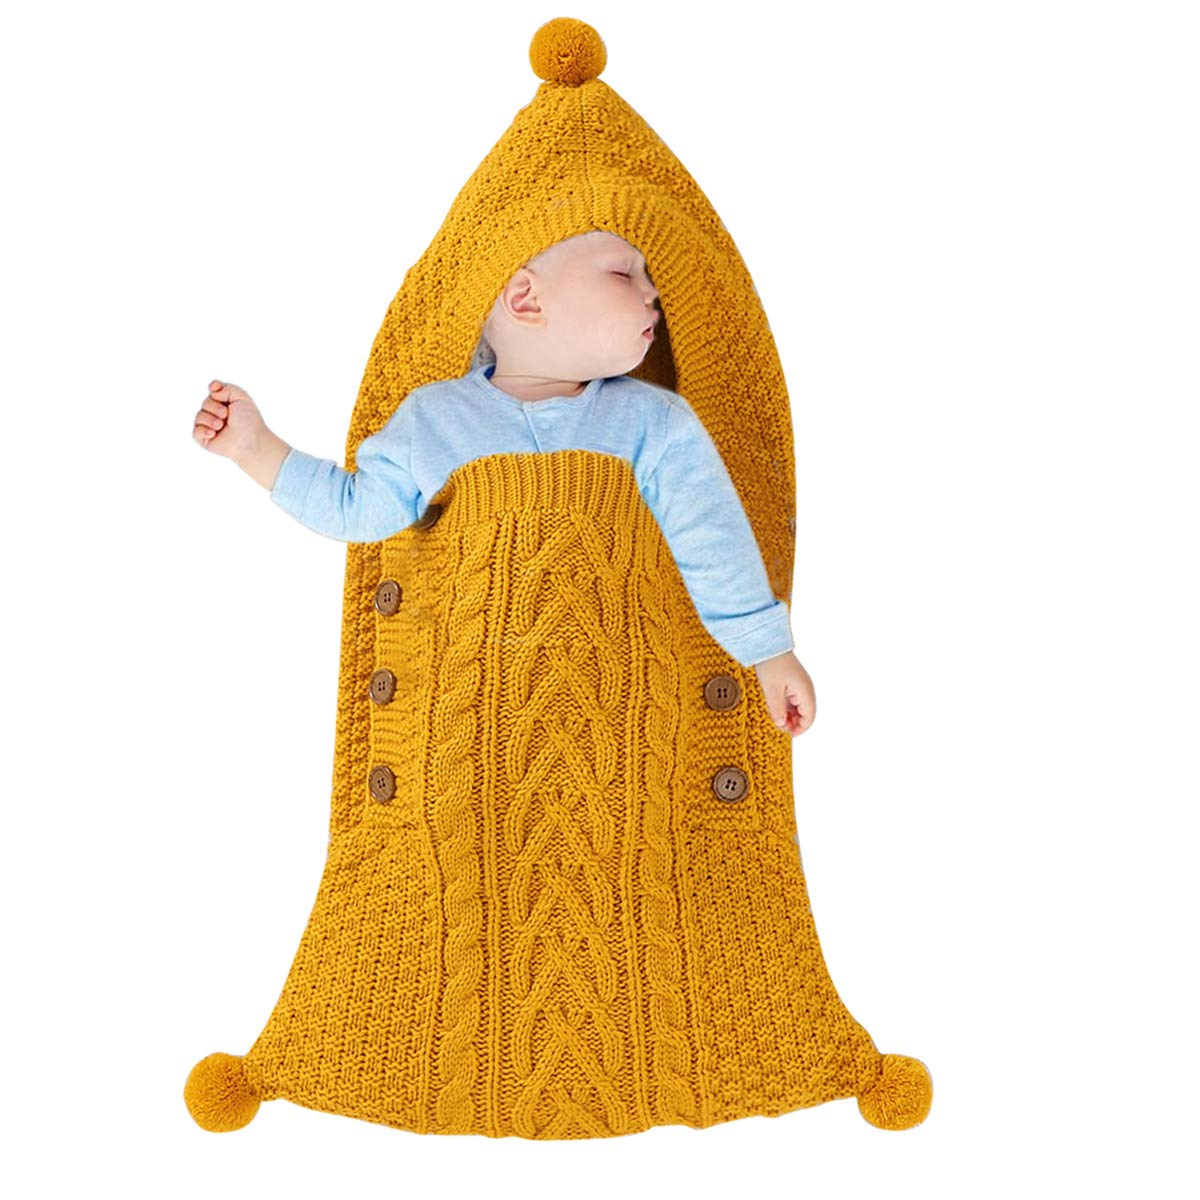 Oenbopo Newborn Baby Wrap Swaddle Blanket, Kids Toddler Knitted Sleeping Bag Stroller Wrap for 0-6 Months Baby (Yellow; 29.5x14.2in)